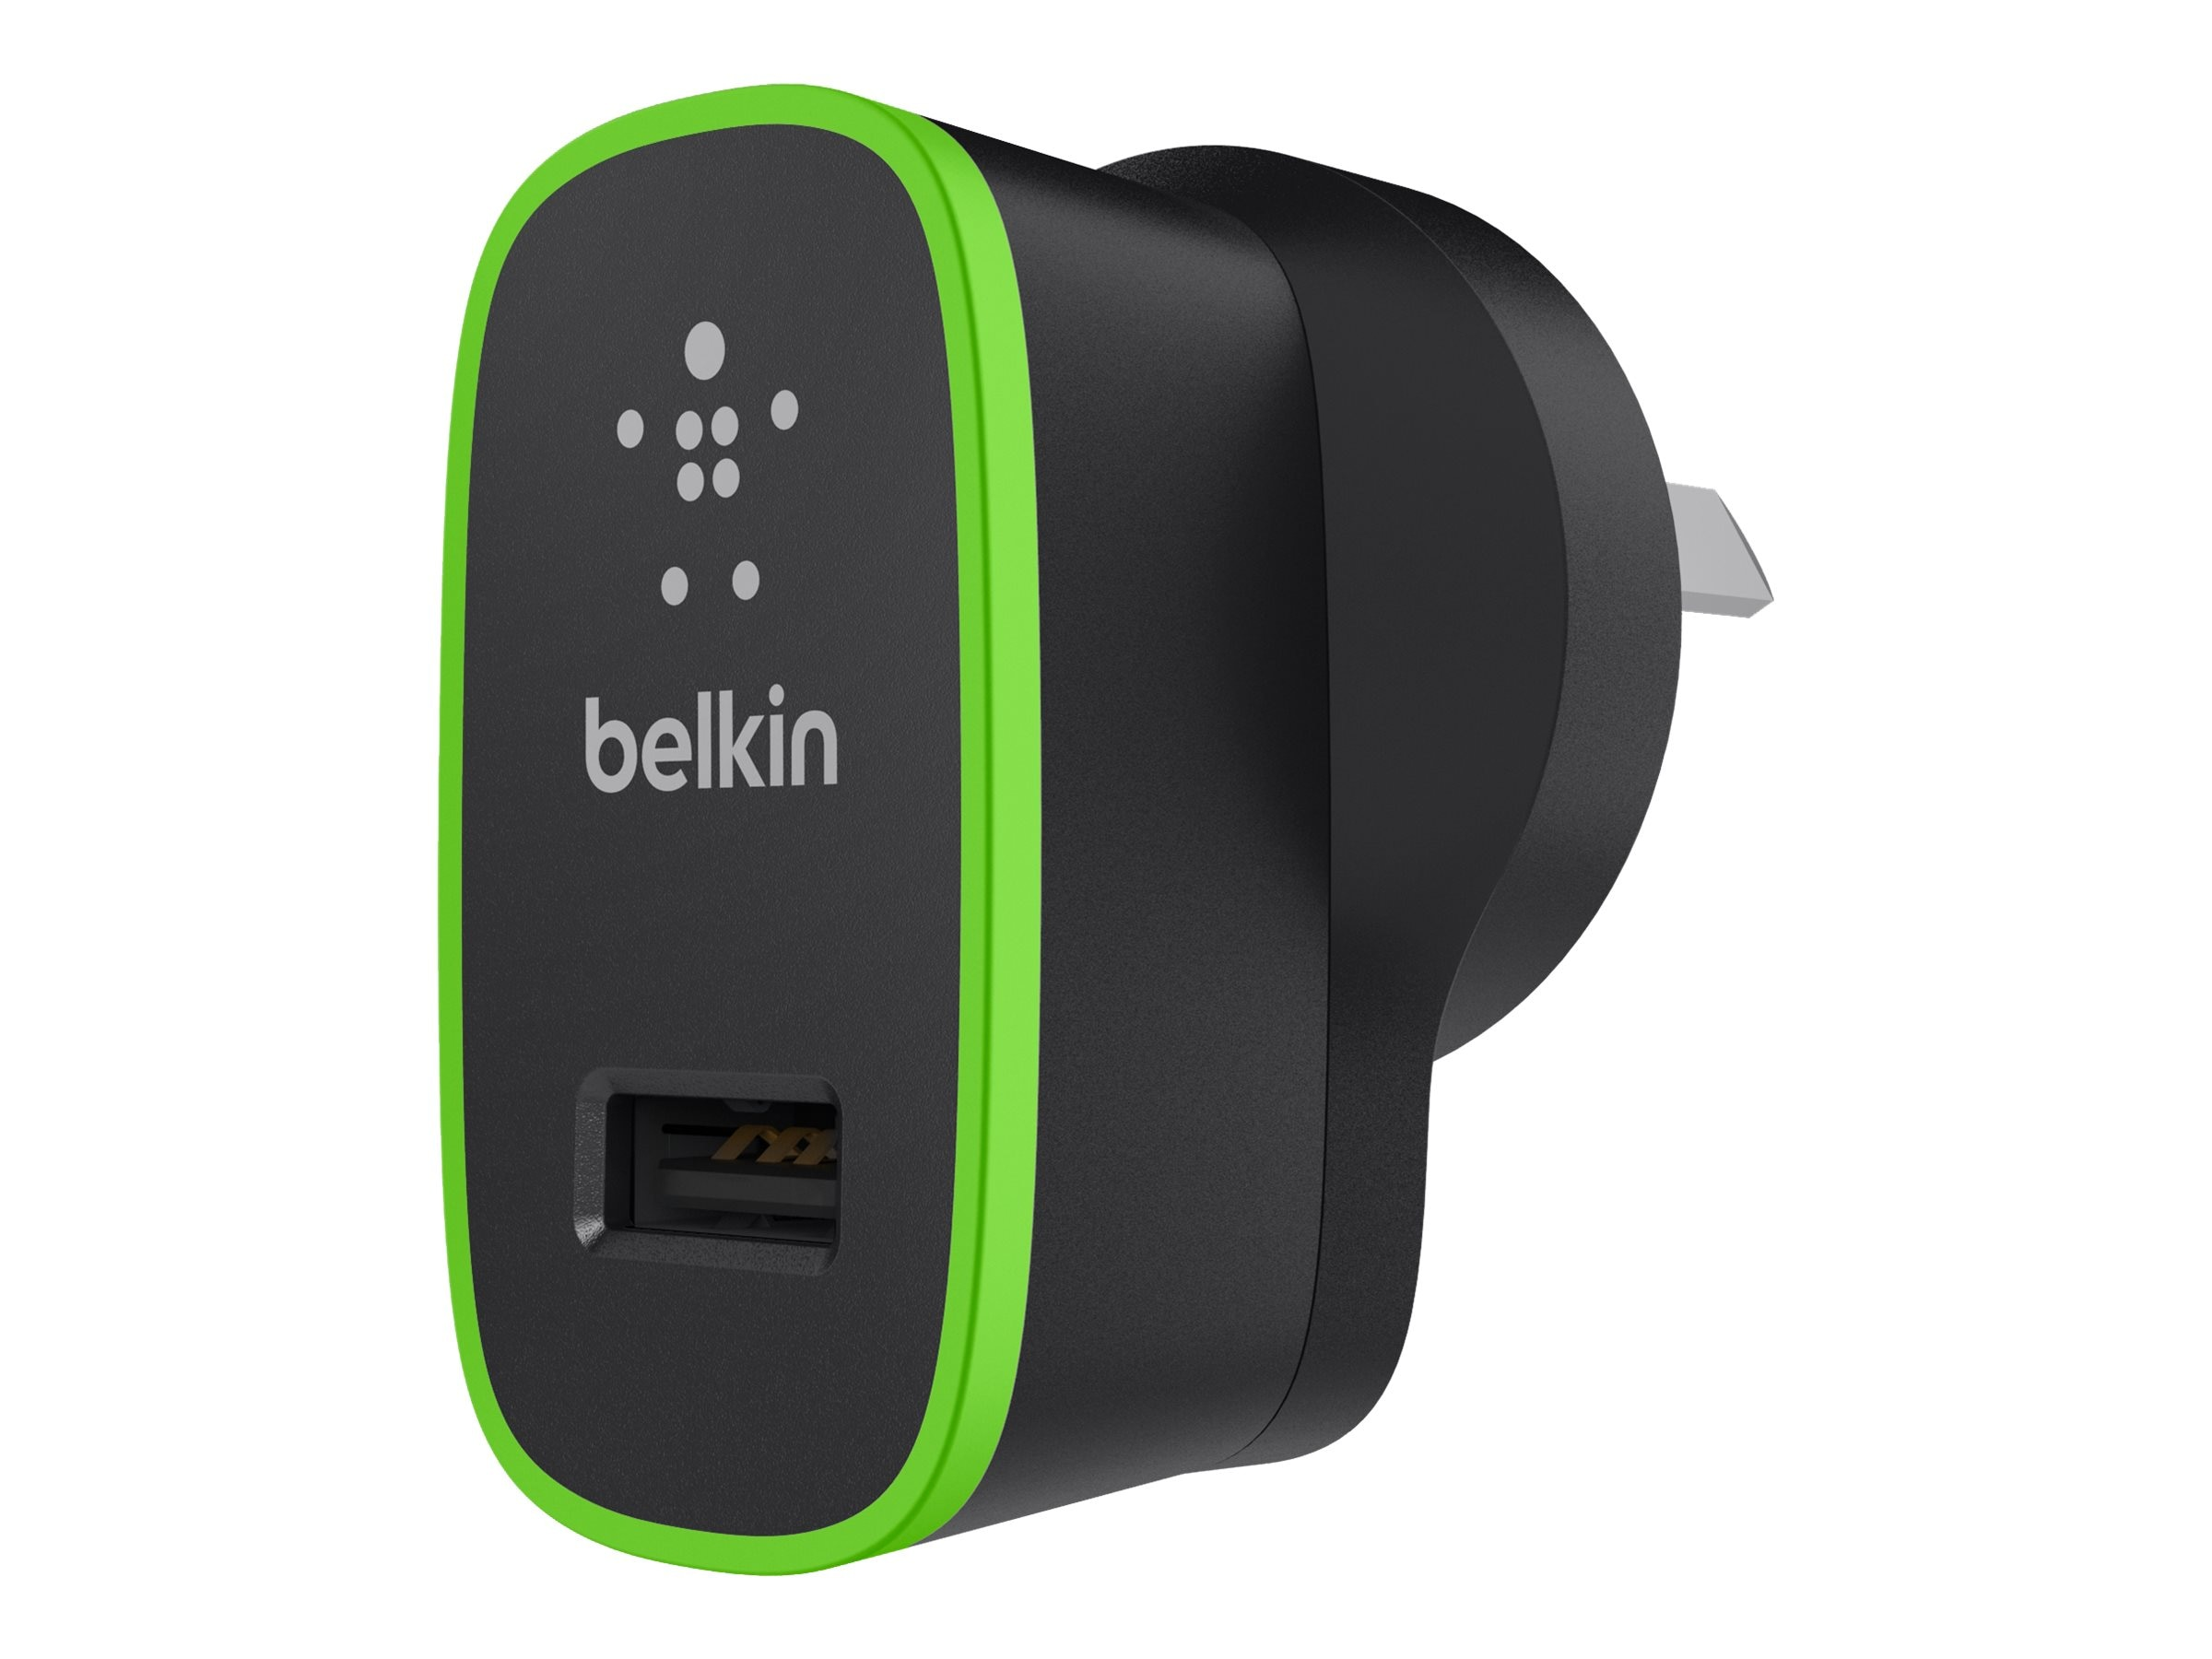 Belkin Home Charger 5V 2.1 Amp, Black w  Green Accent, F8J052TTBLK